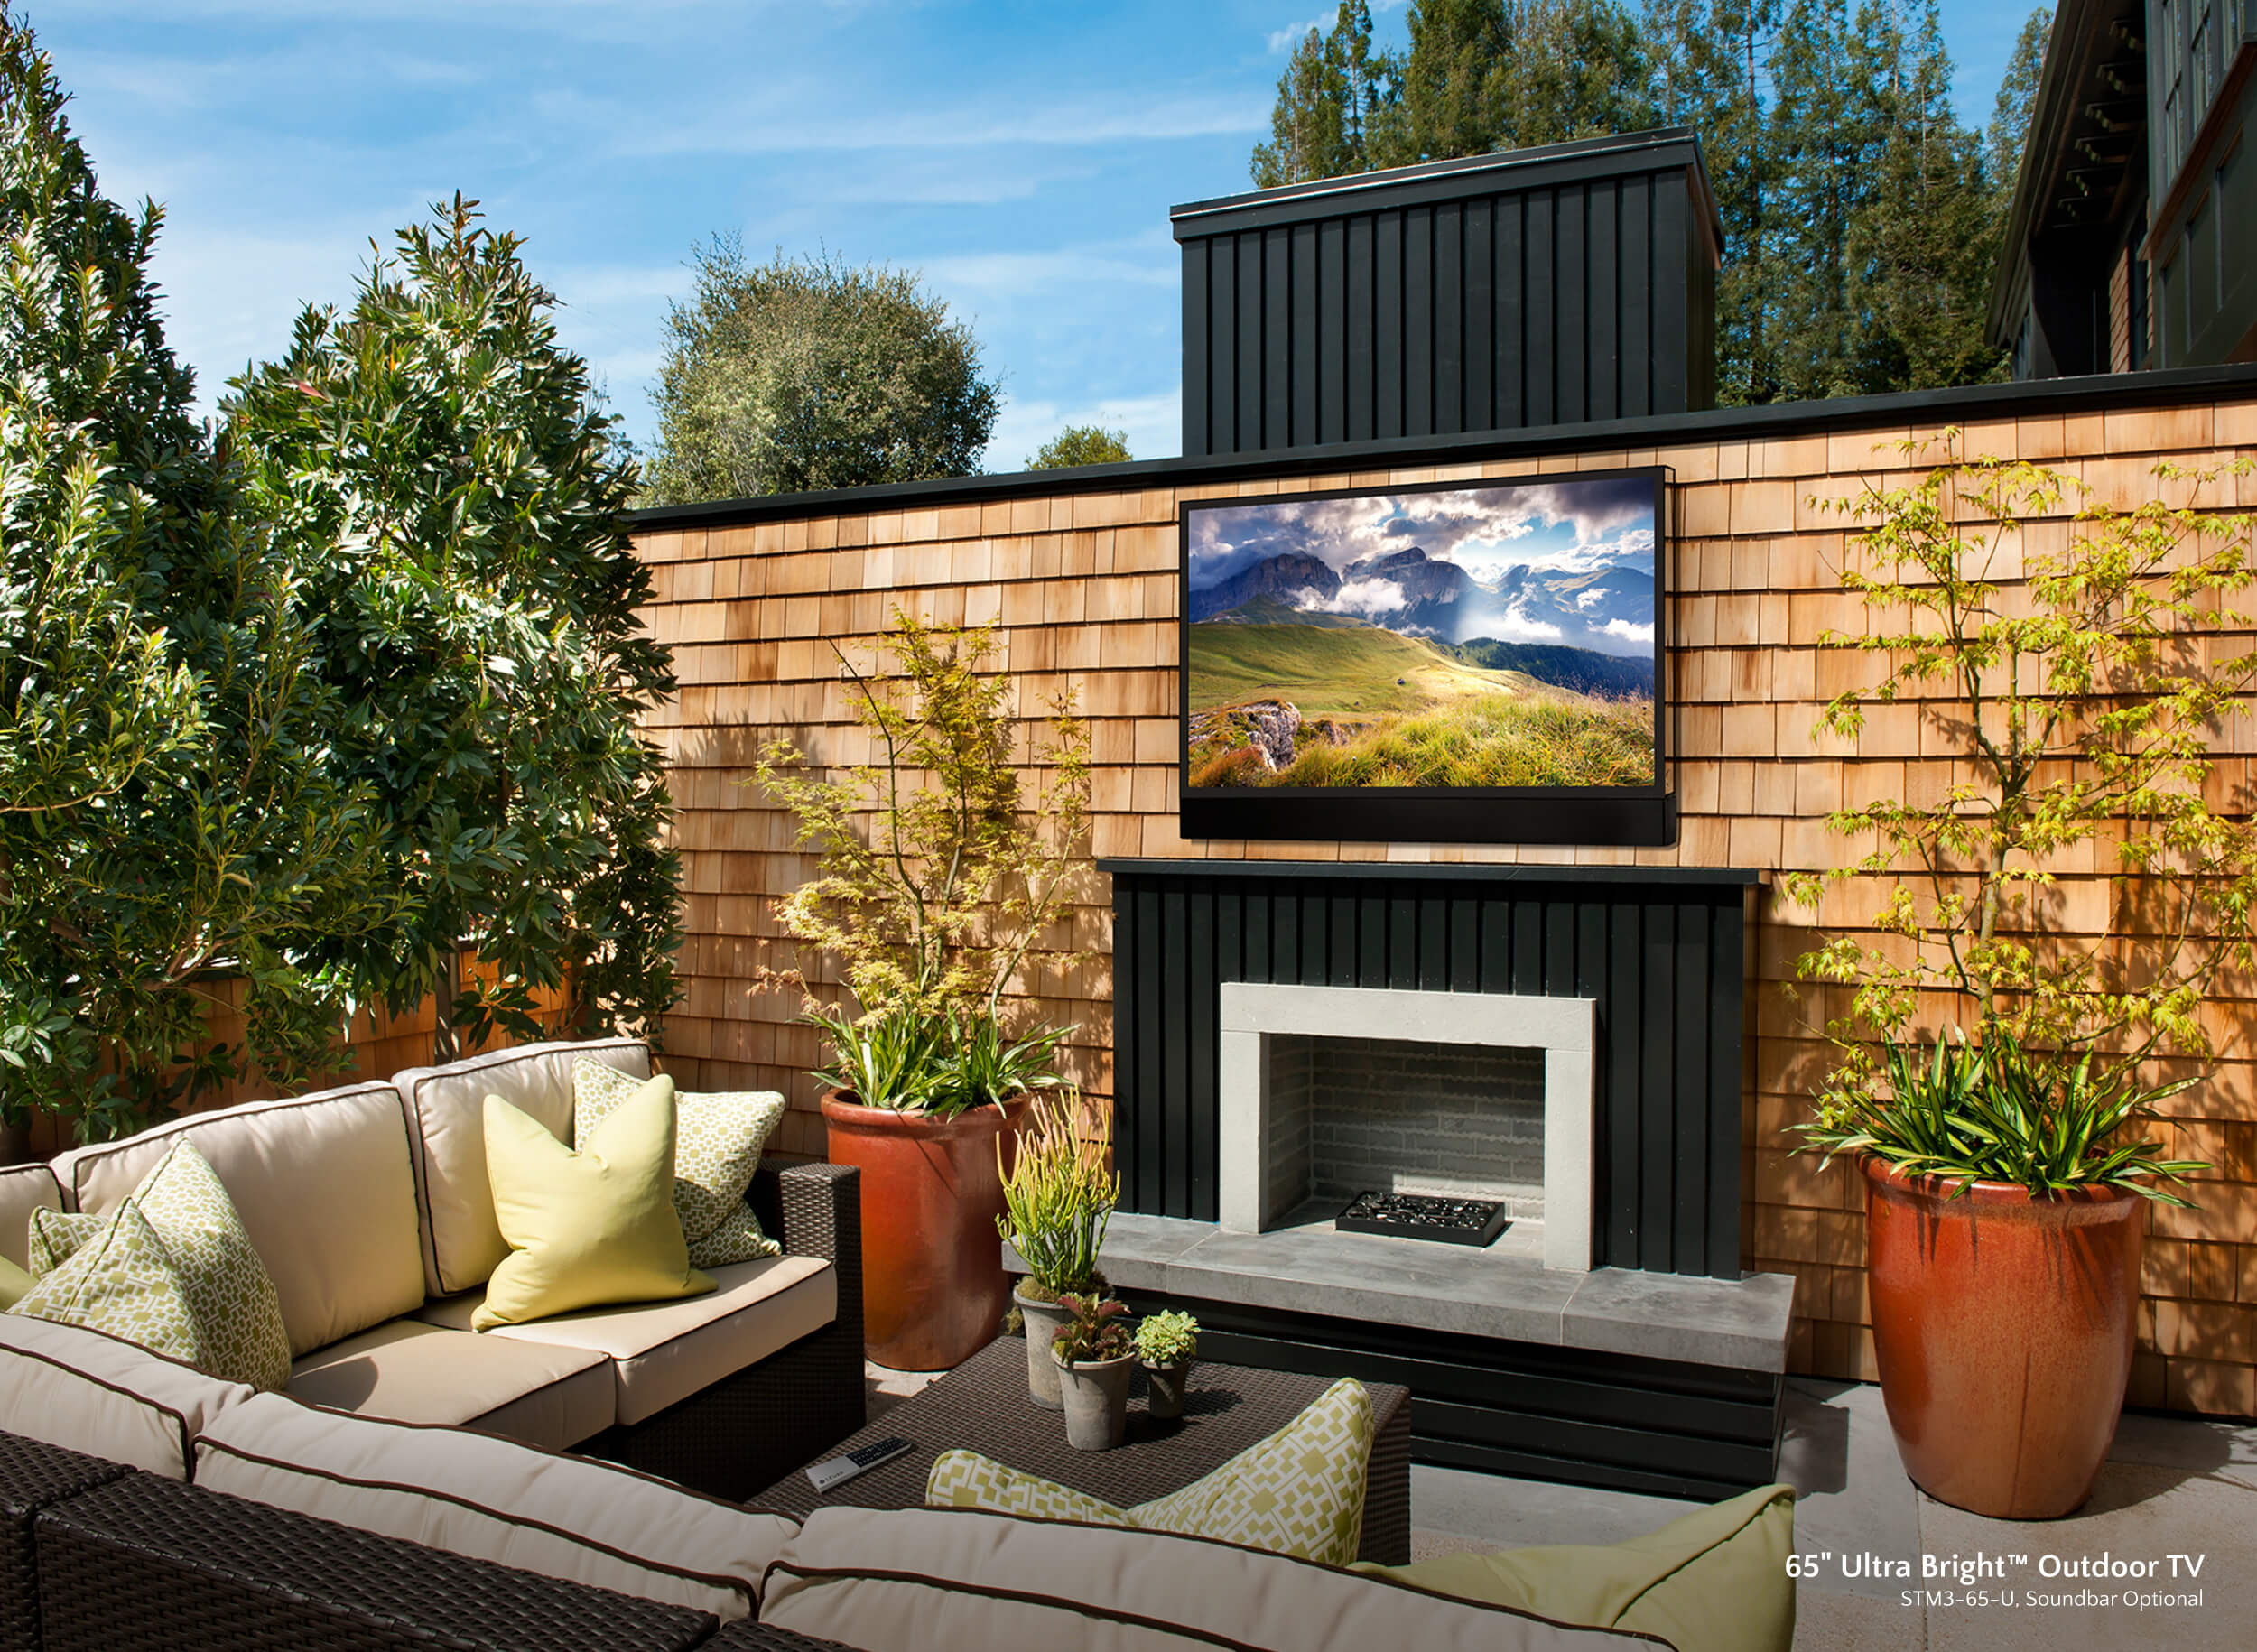 Create an Unforgettable Thanksgiving Experience with Outdoor A/V